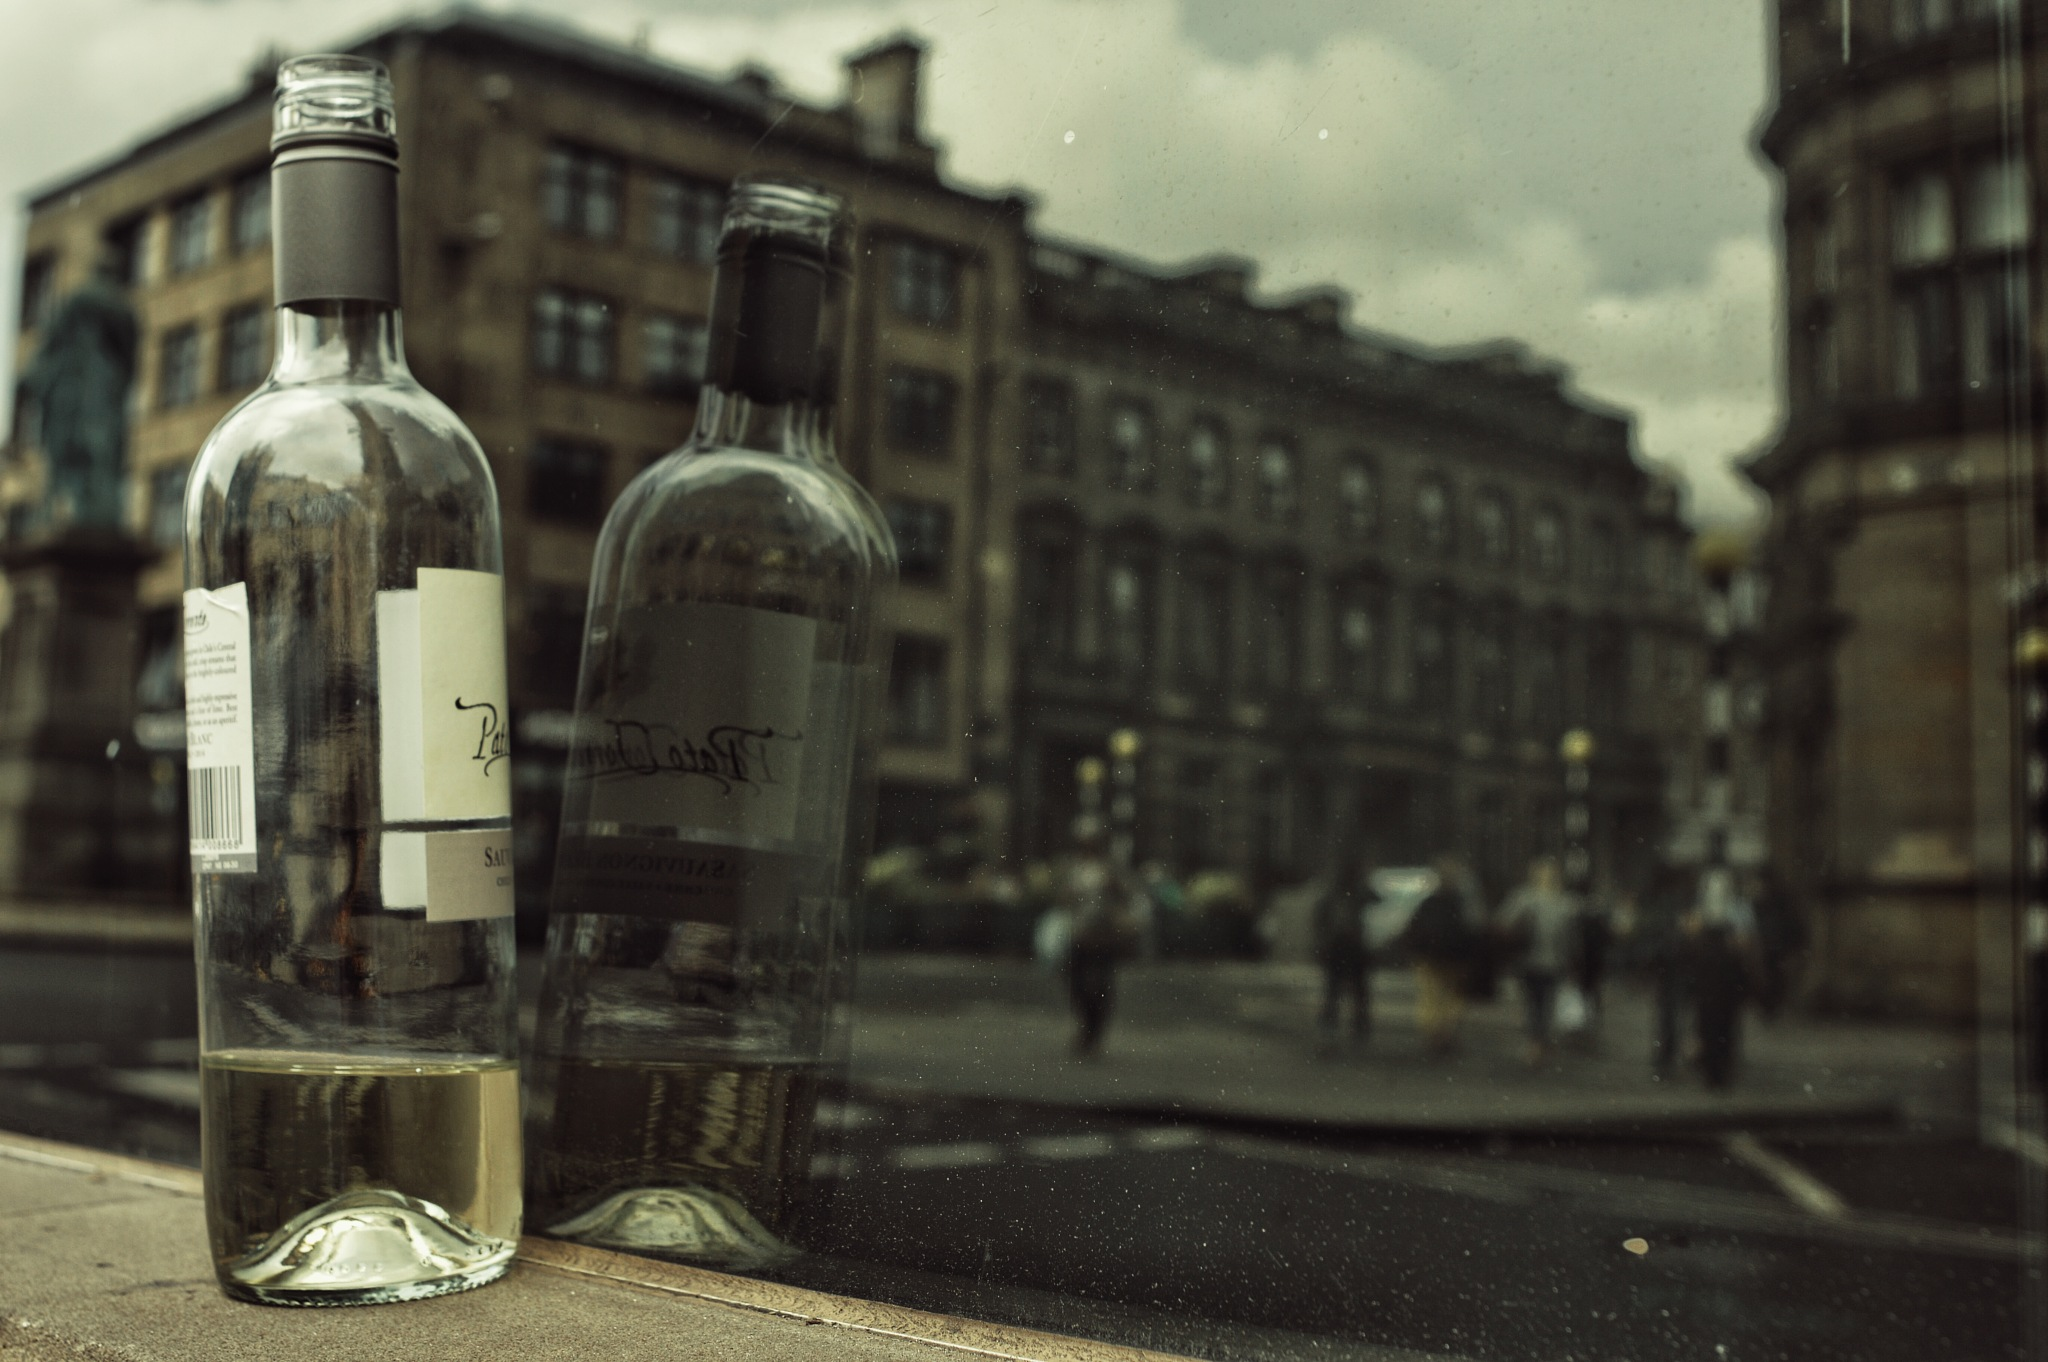 Wine by The PhotoGrabber